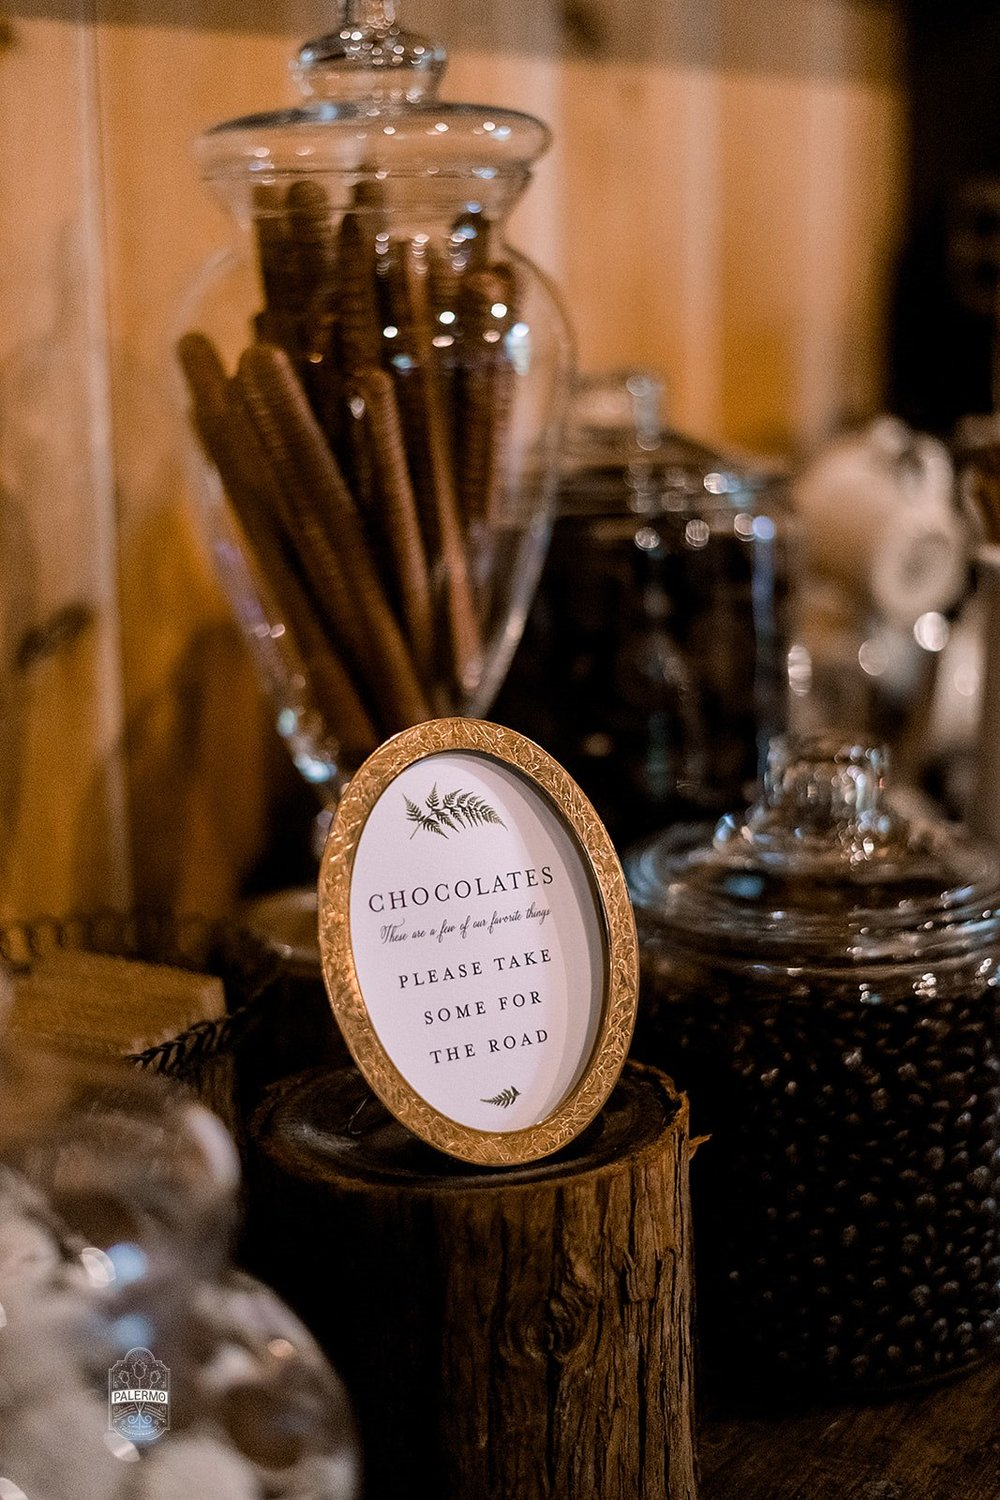 Wedding dessert table ideas for fall barn wedding in Pittsburgh, PA planned by Exhale Events. Find more wedding inspiration at exhale-events.com!